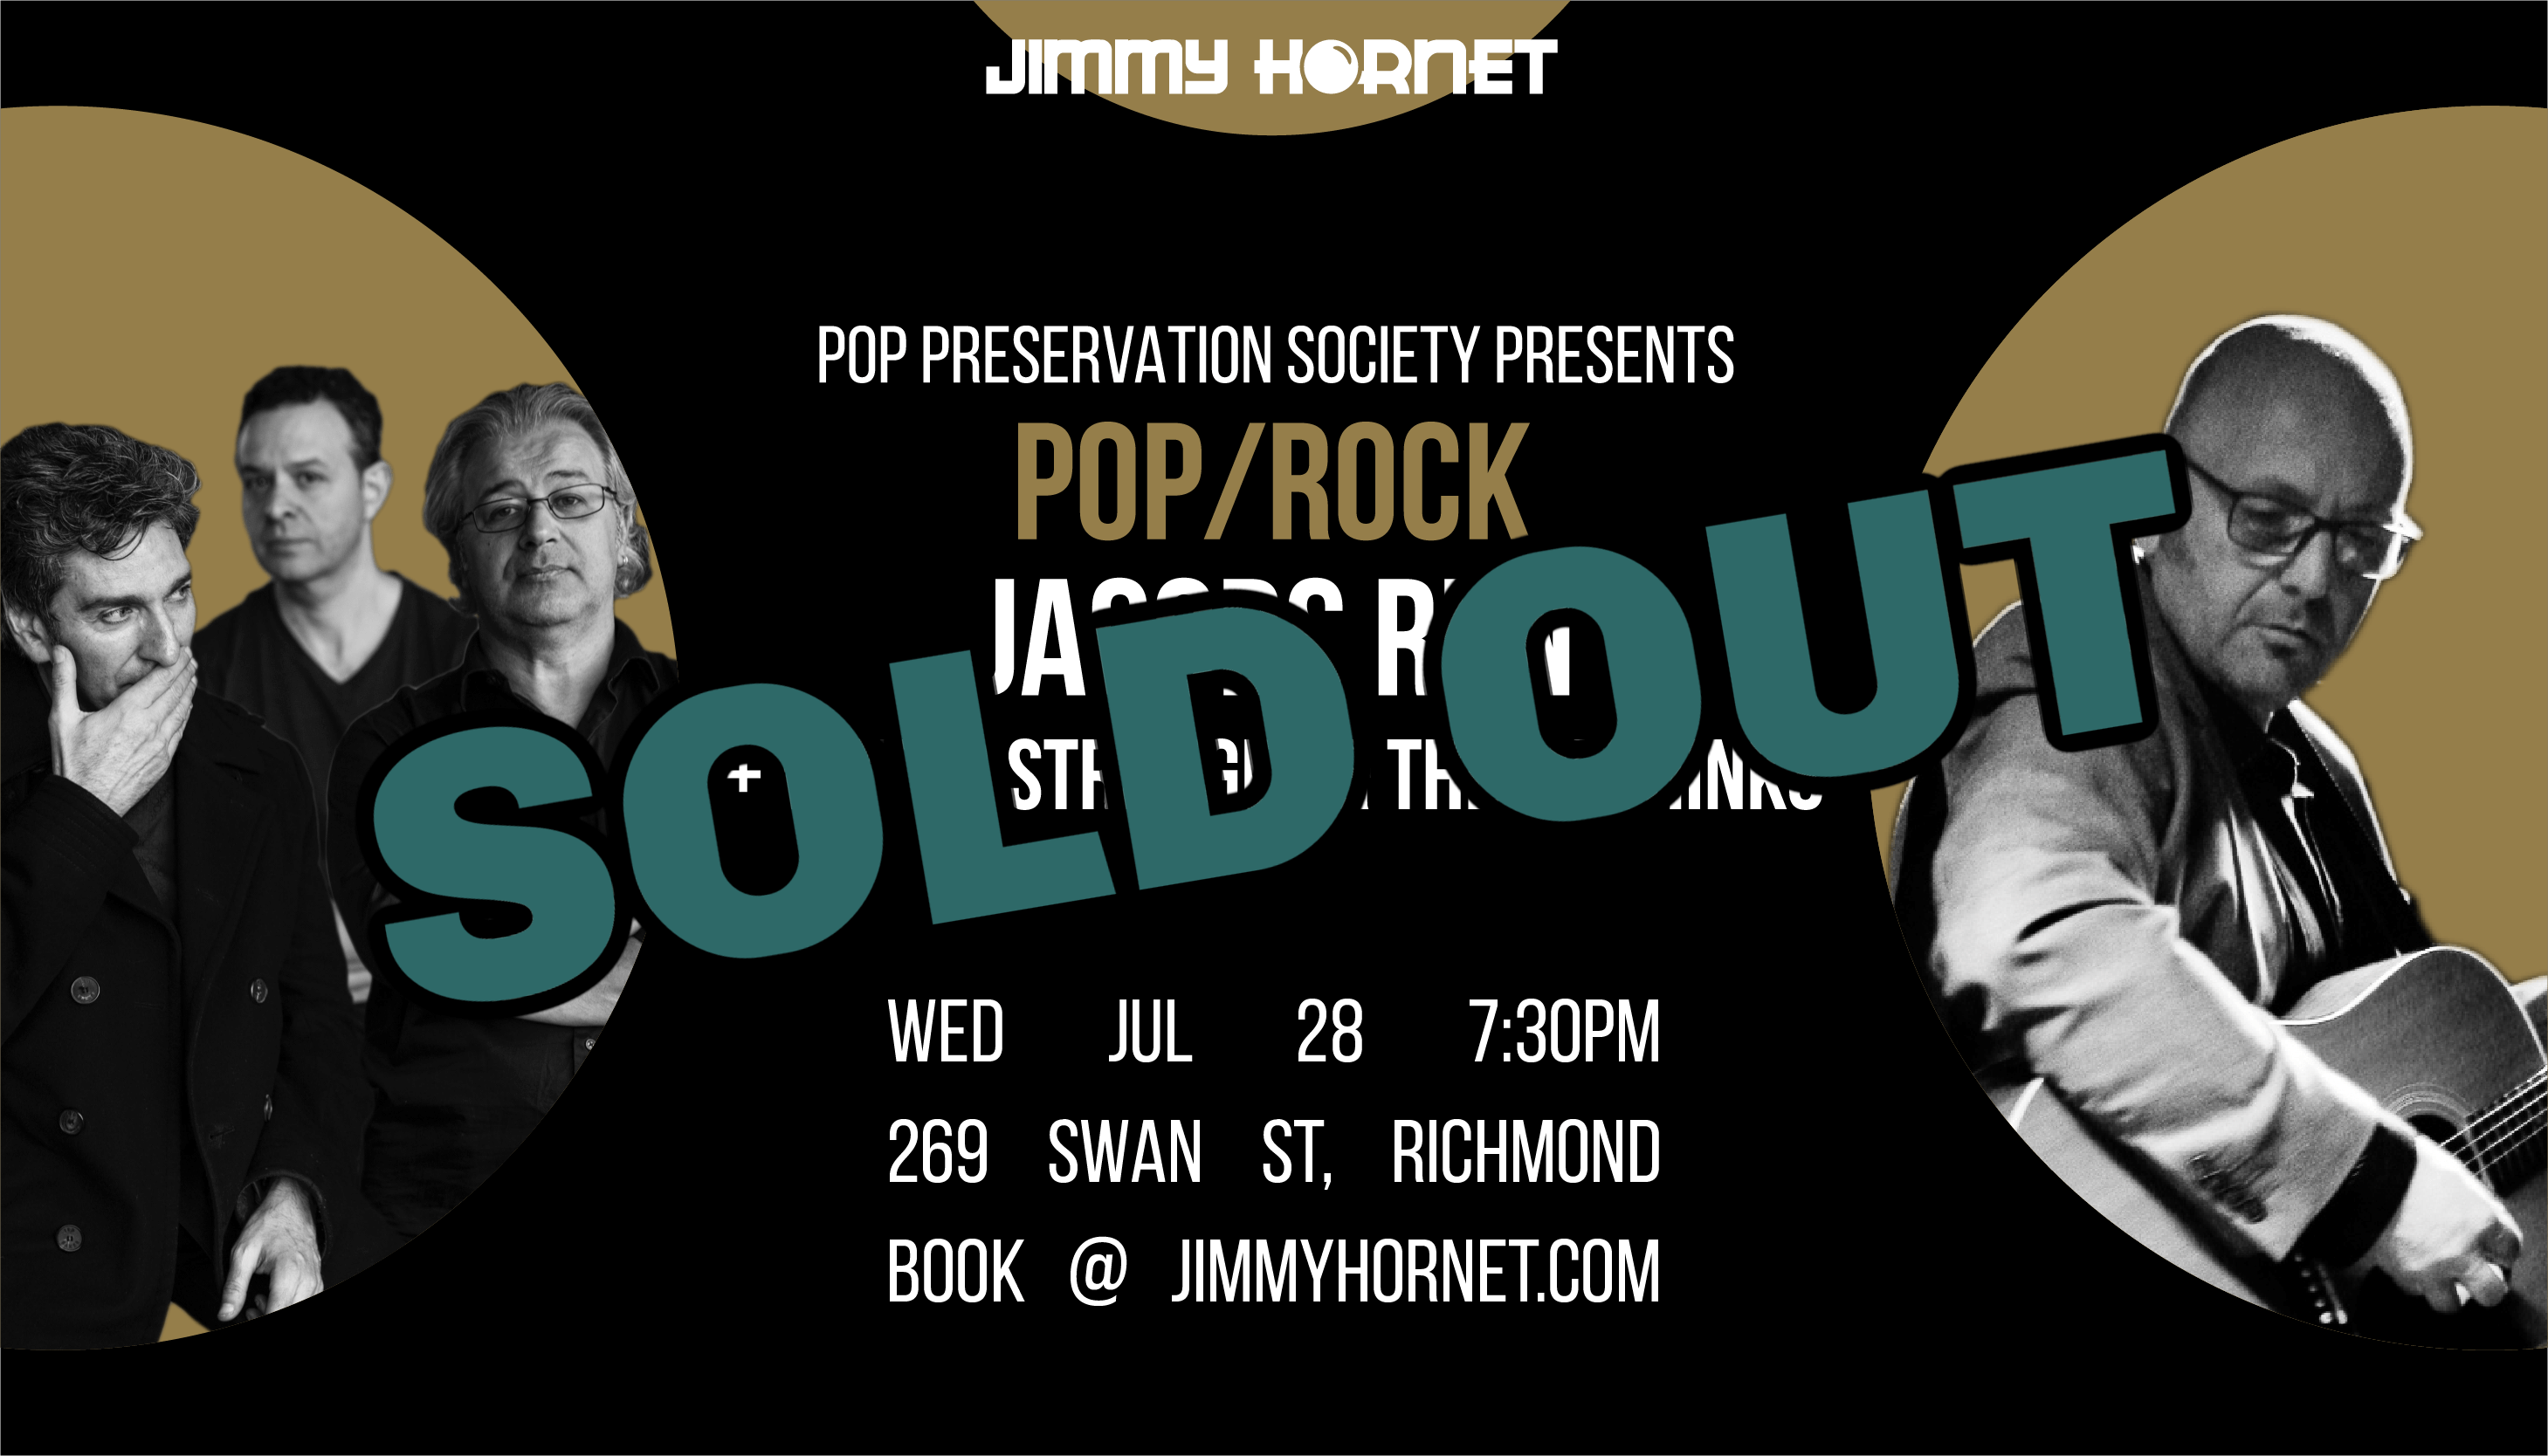 Sold Out Wed 28 July at Jimmy Hornet